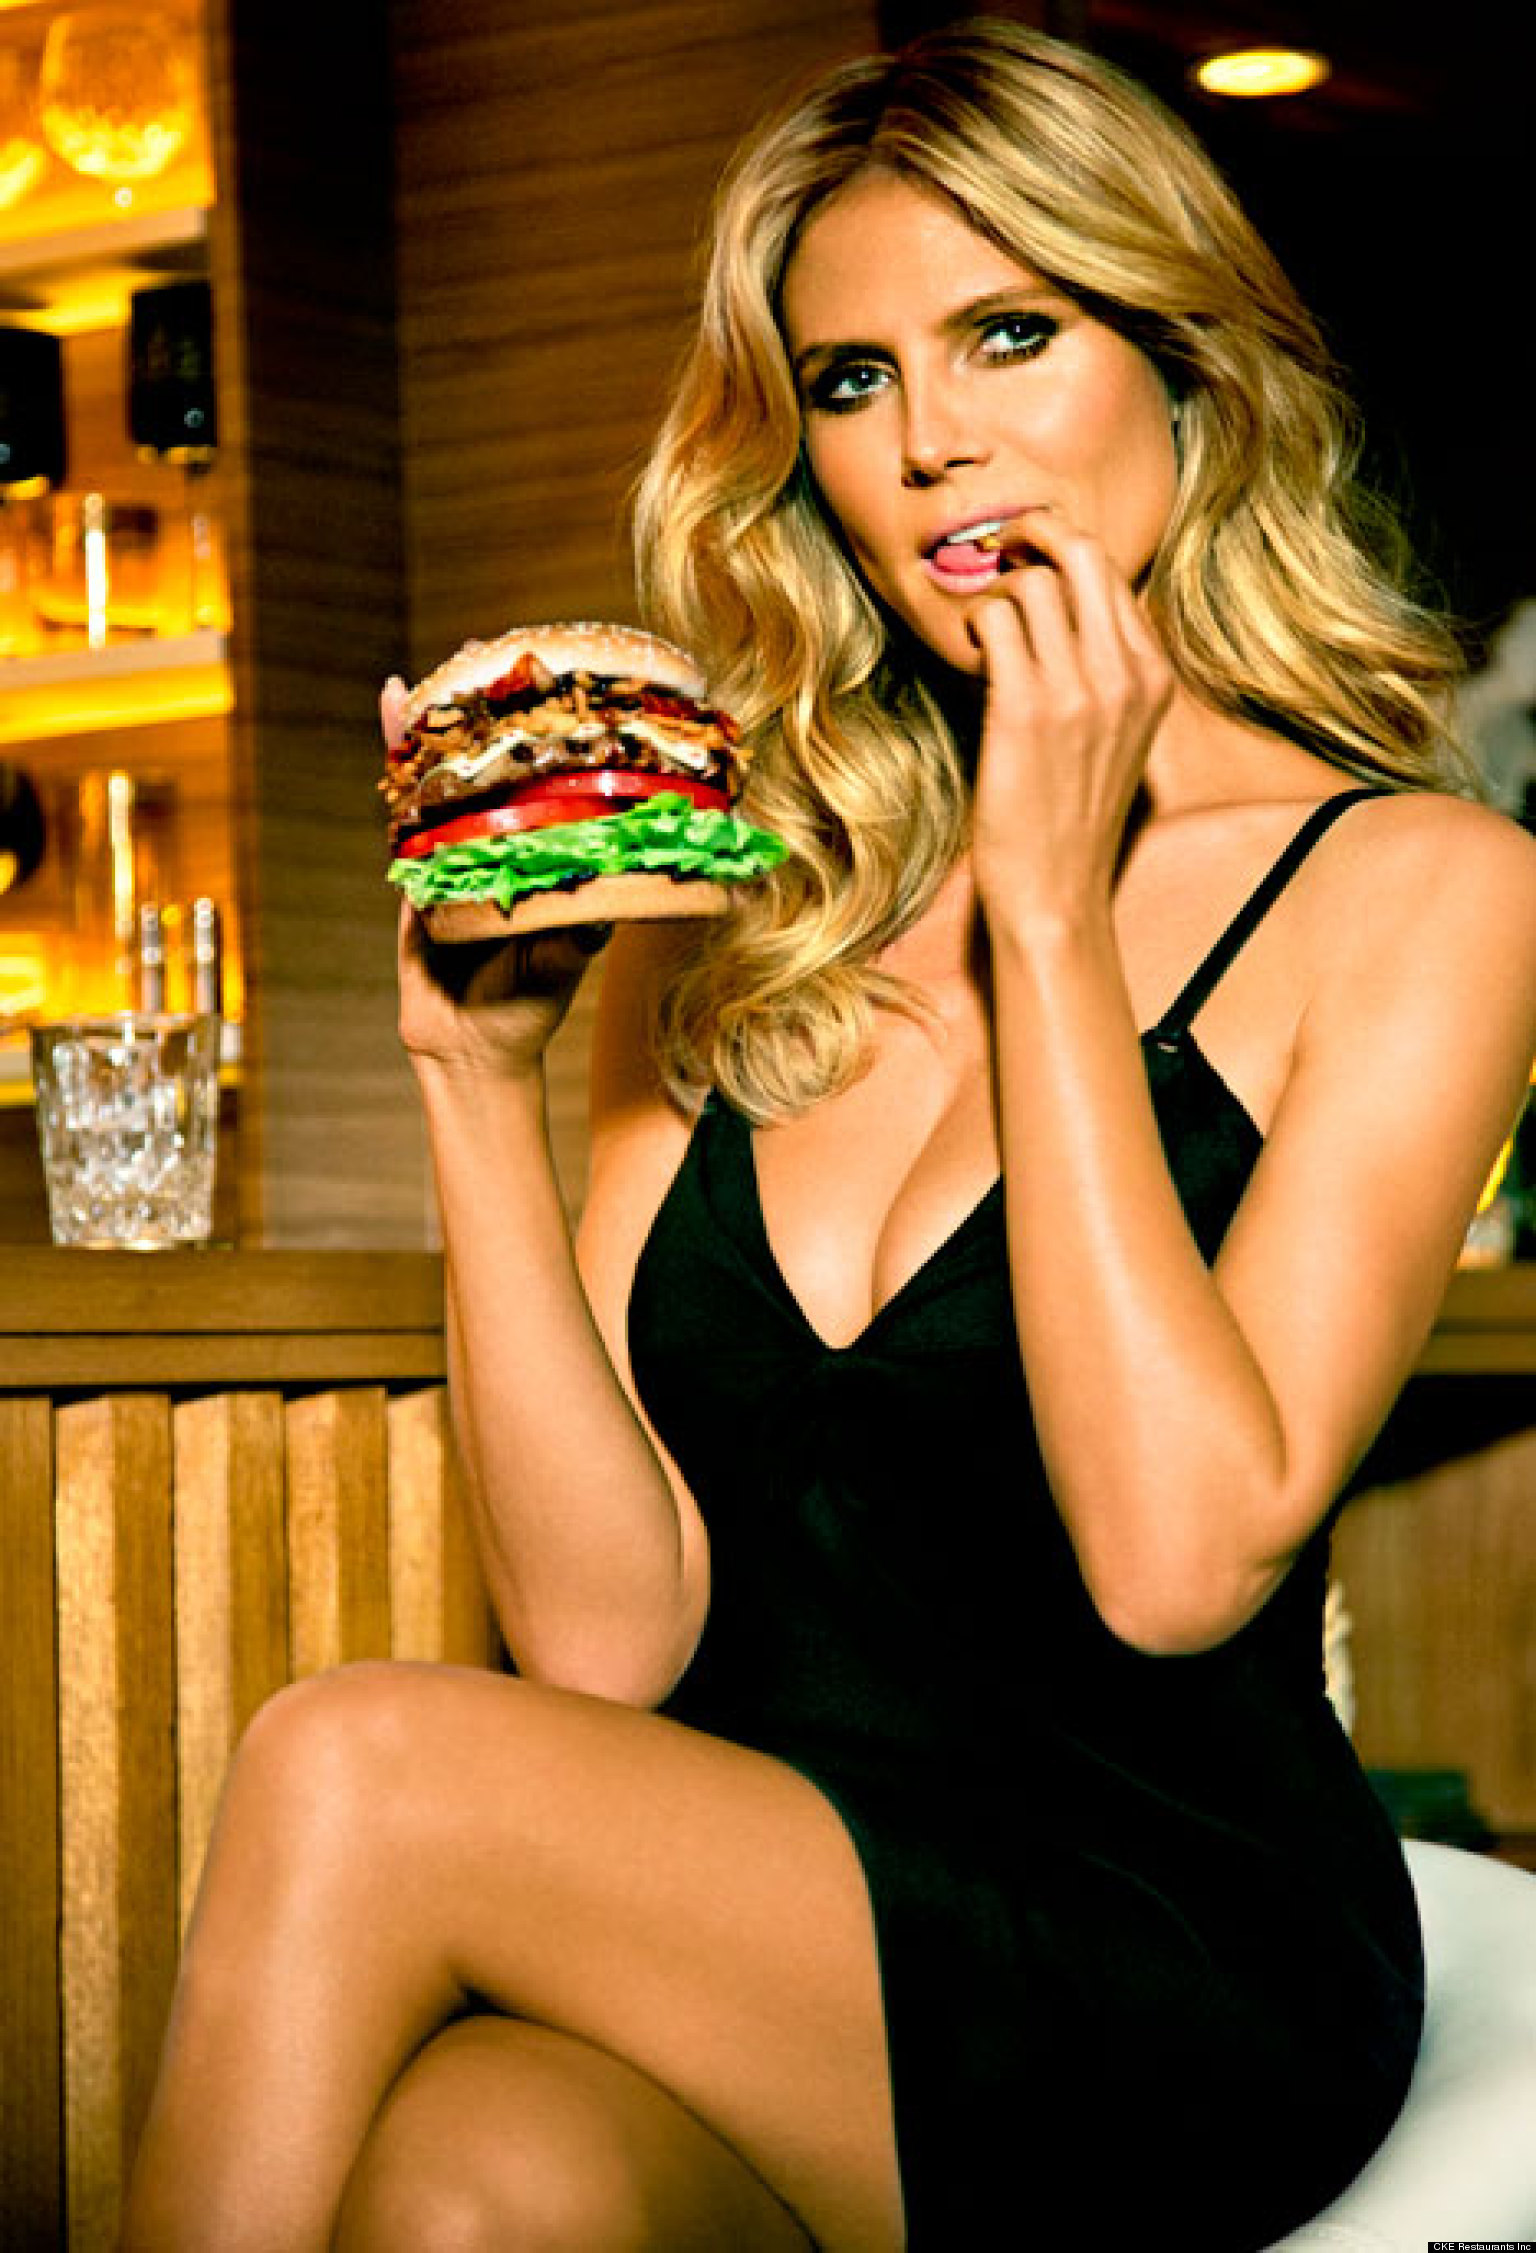 carl s jr commercial Genevieve morton's role in the carl's jr three-way fantasy is as hot as it sounds a big congrats goes out to genevieve for her roll in what might be the most provocative carl's jr/hardee's commercial yet.